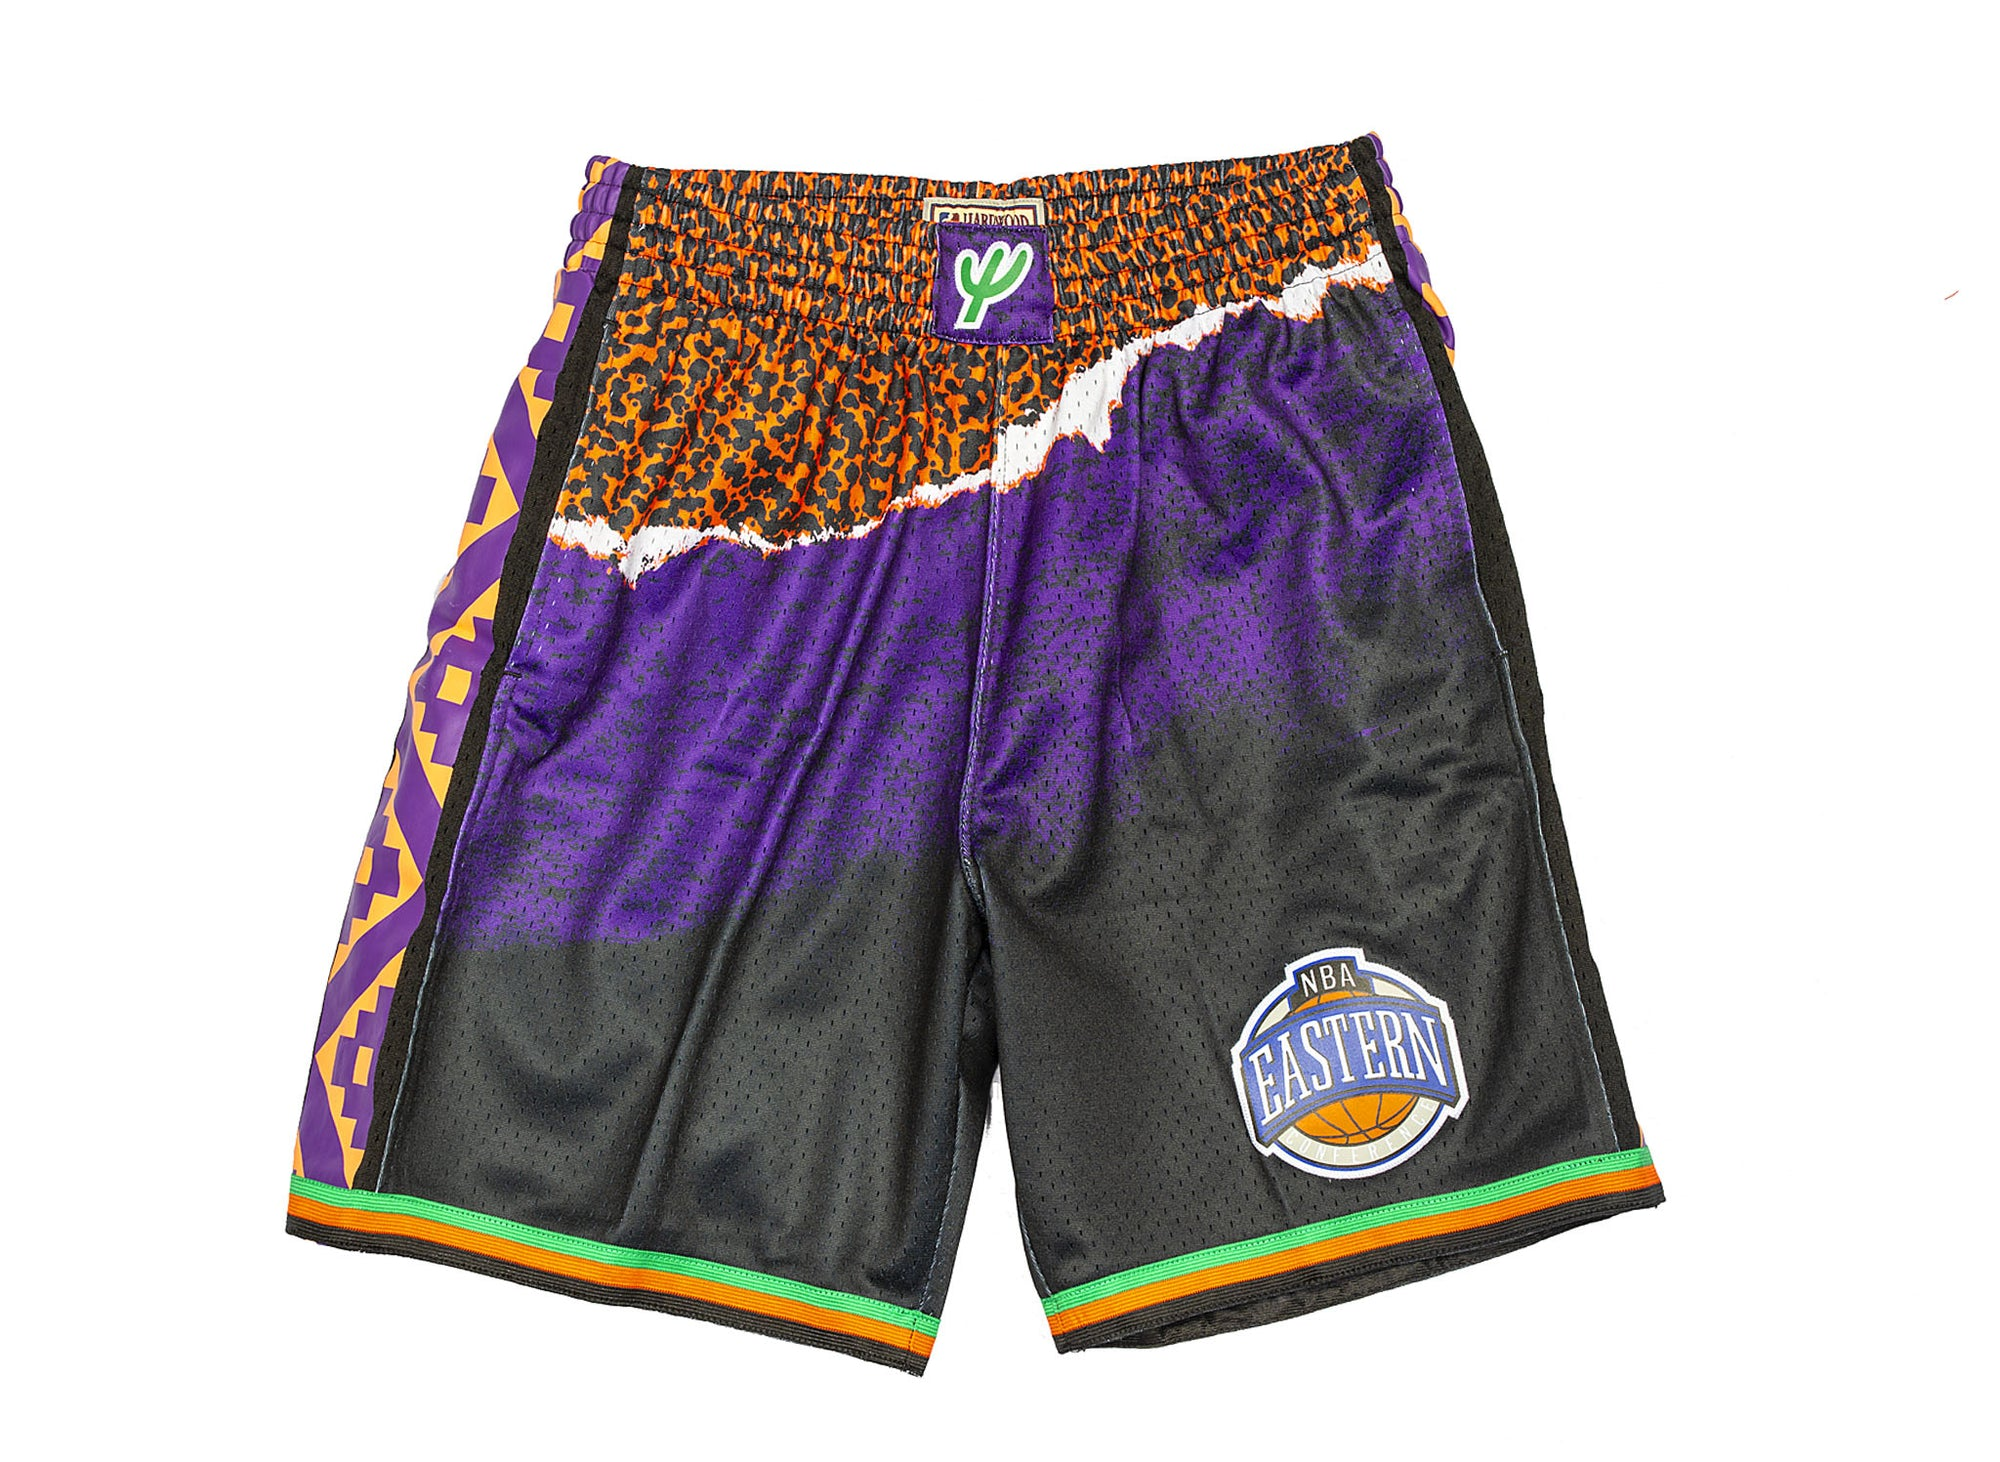 MITCHELL & NESS NBA SUBLIMATED SWINGMAN SHORTS ALL STAR EAST 95